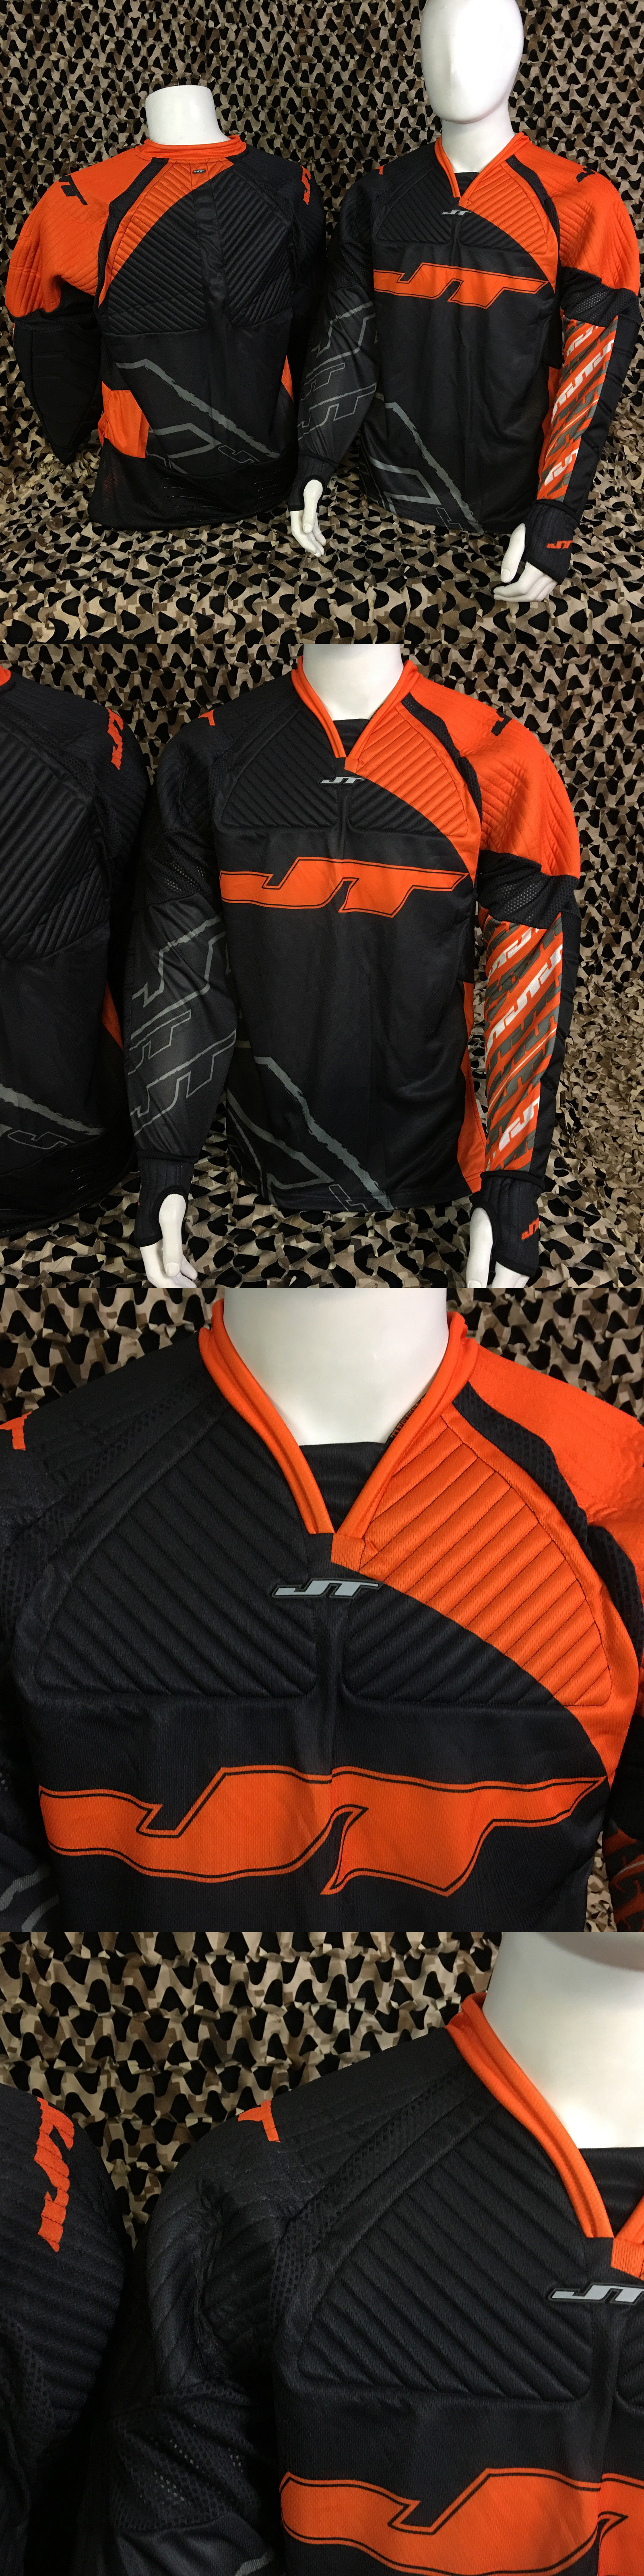 d00ddbd91 Jerseys and Shirts 165939: New Jt Fx 2.0 Padded Paintball Jersey -  Orange/Black -> BUY IT NOW ONLY: $32.95 on eBay!